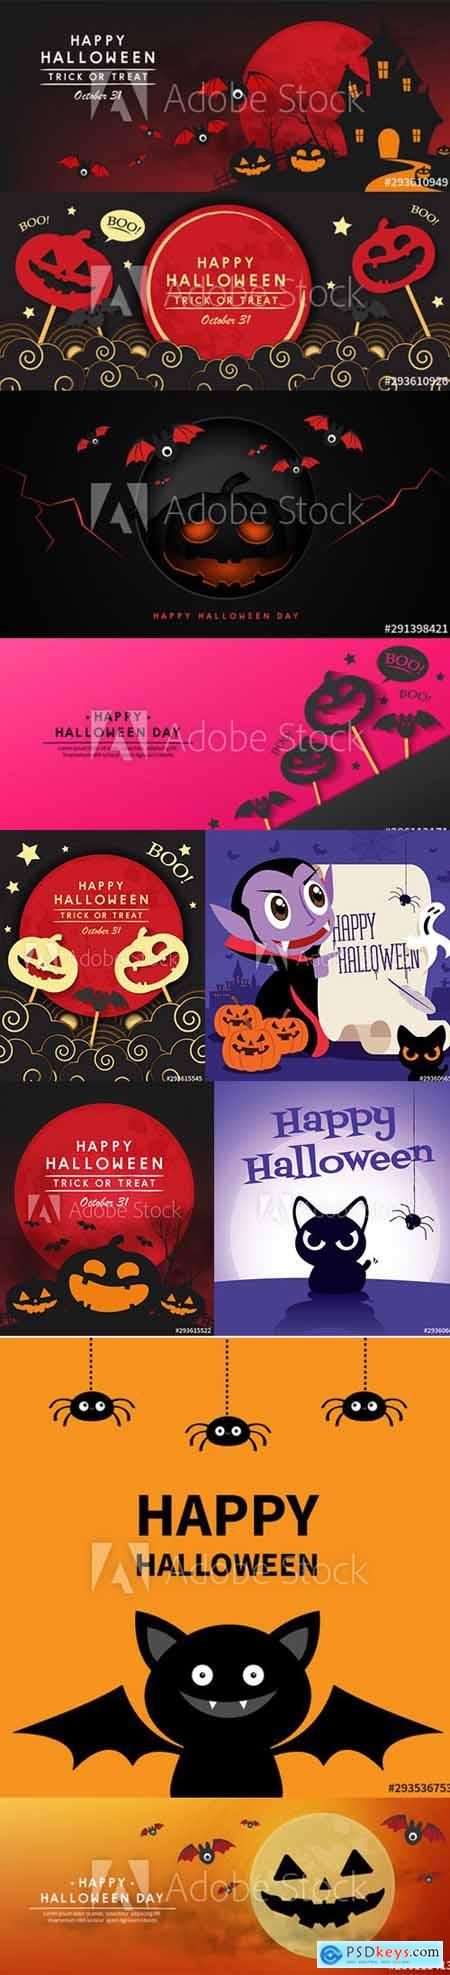 Vector Set - Happy Halloween Illustrations and Cartoon Funny Dracula Banner